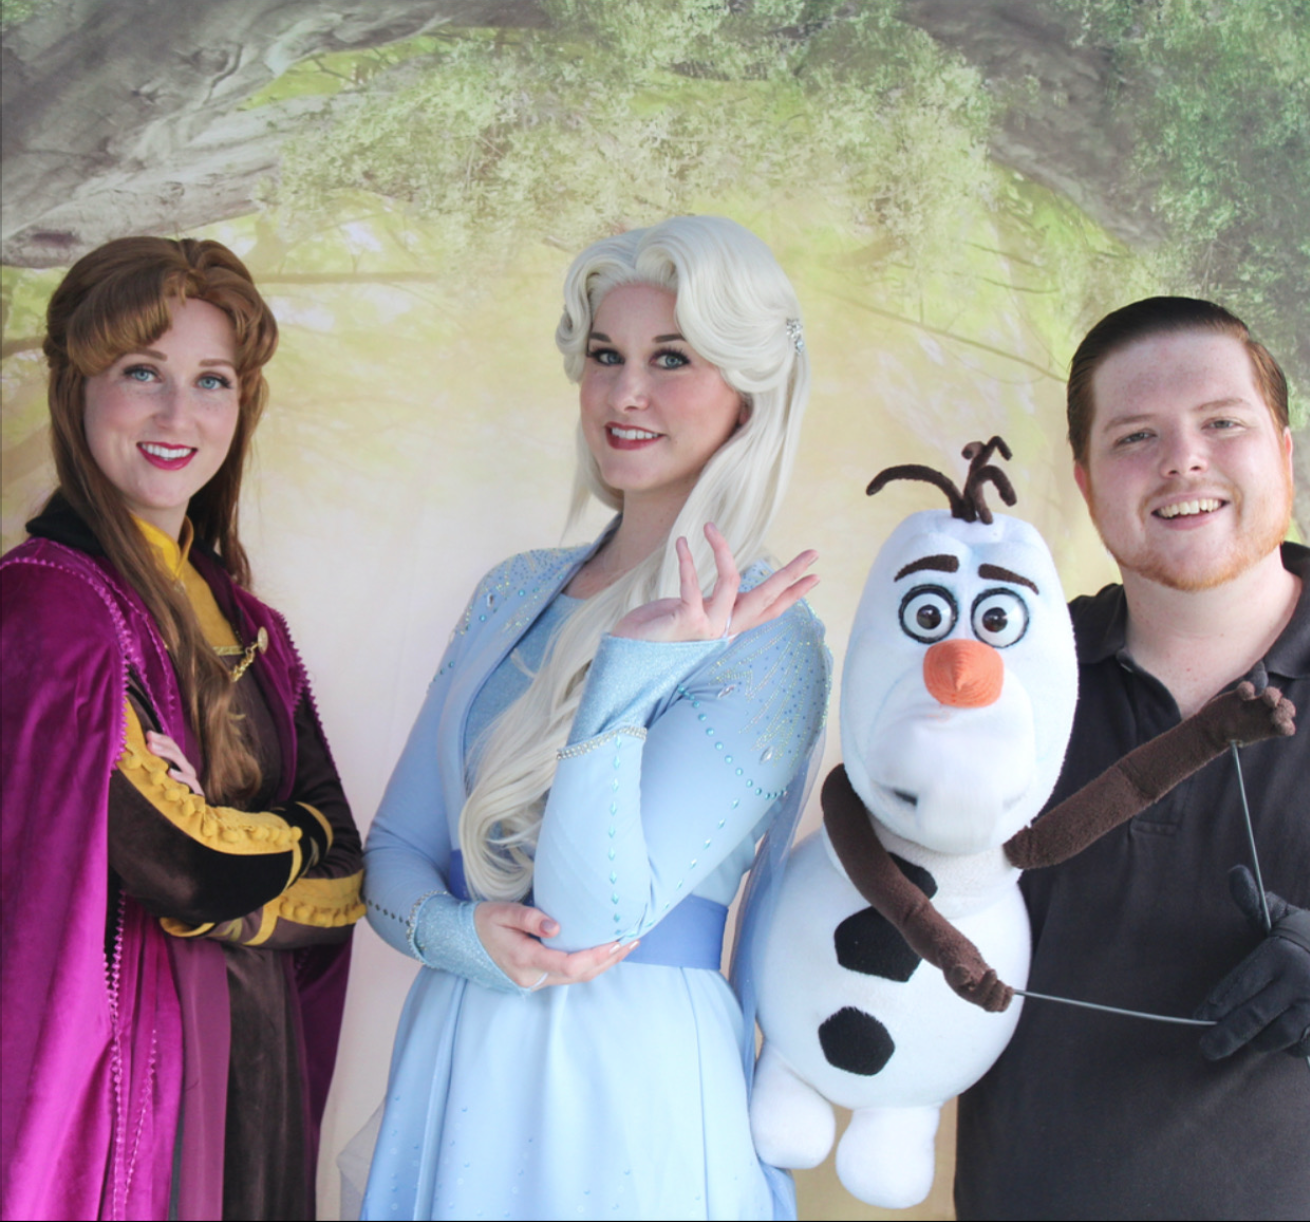 Frozen 2 party characters for hire